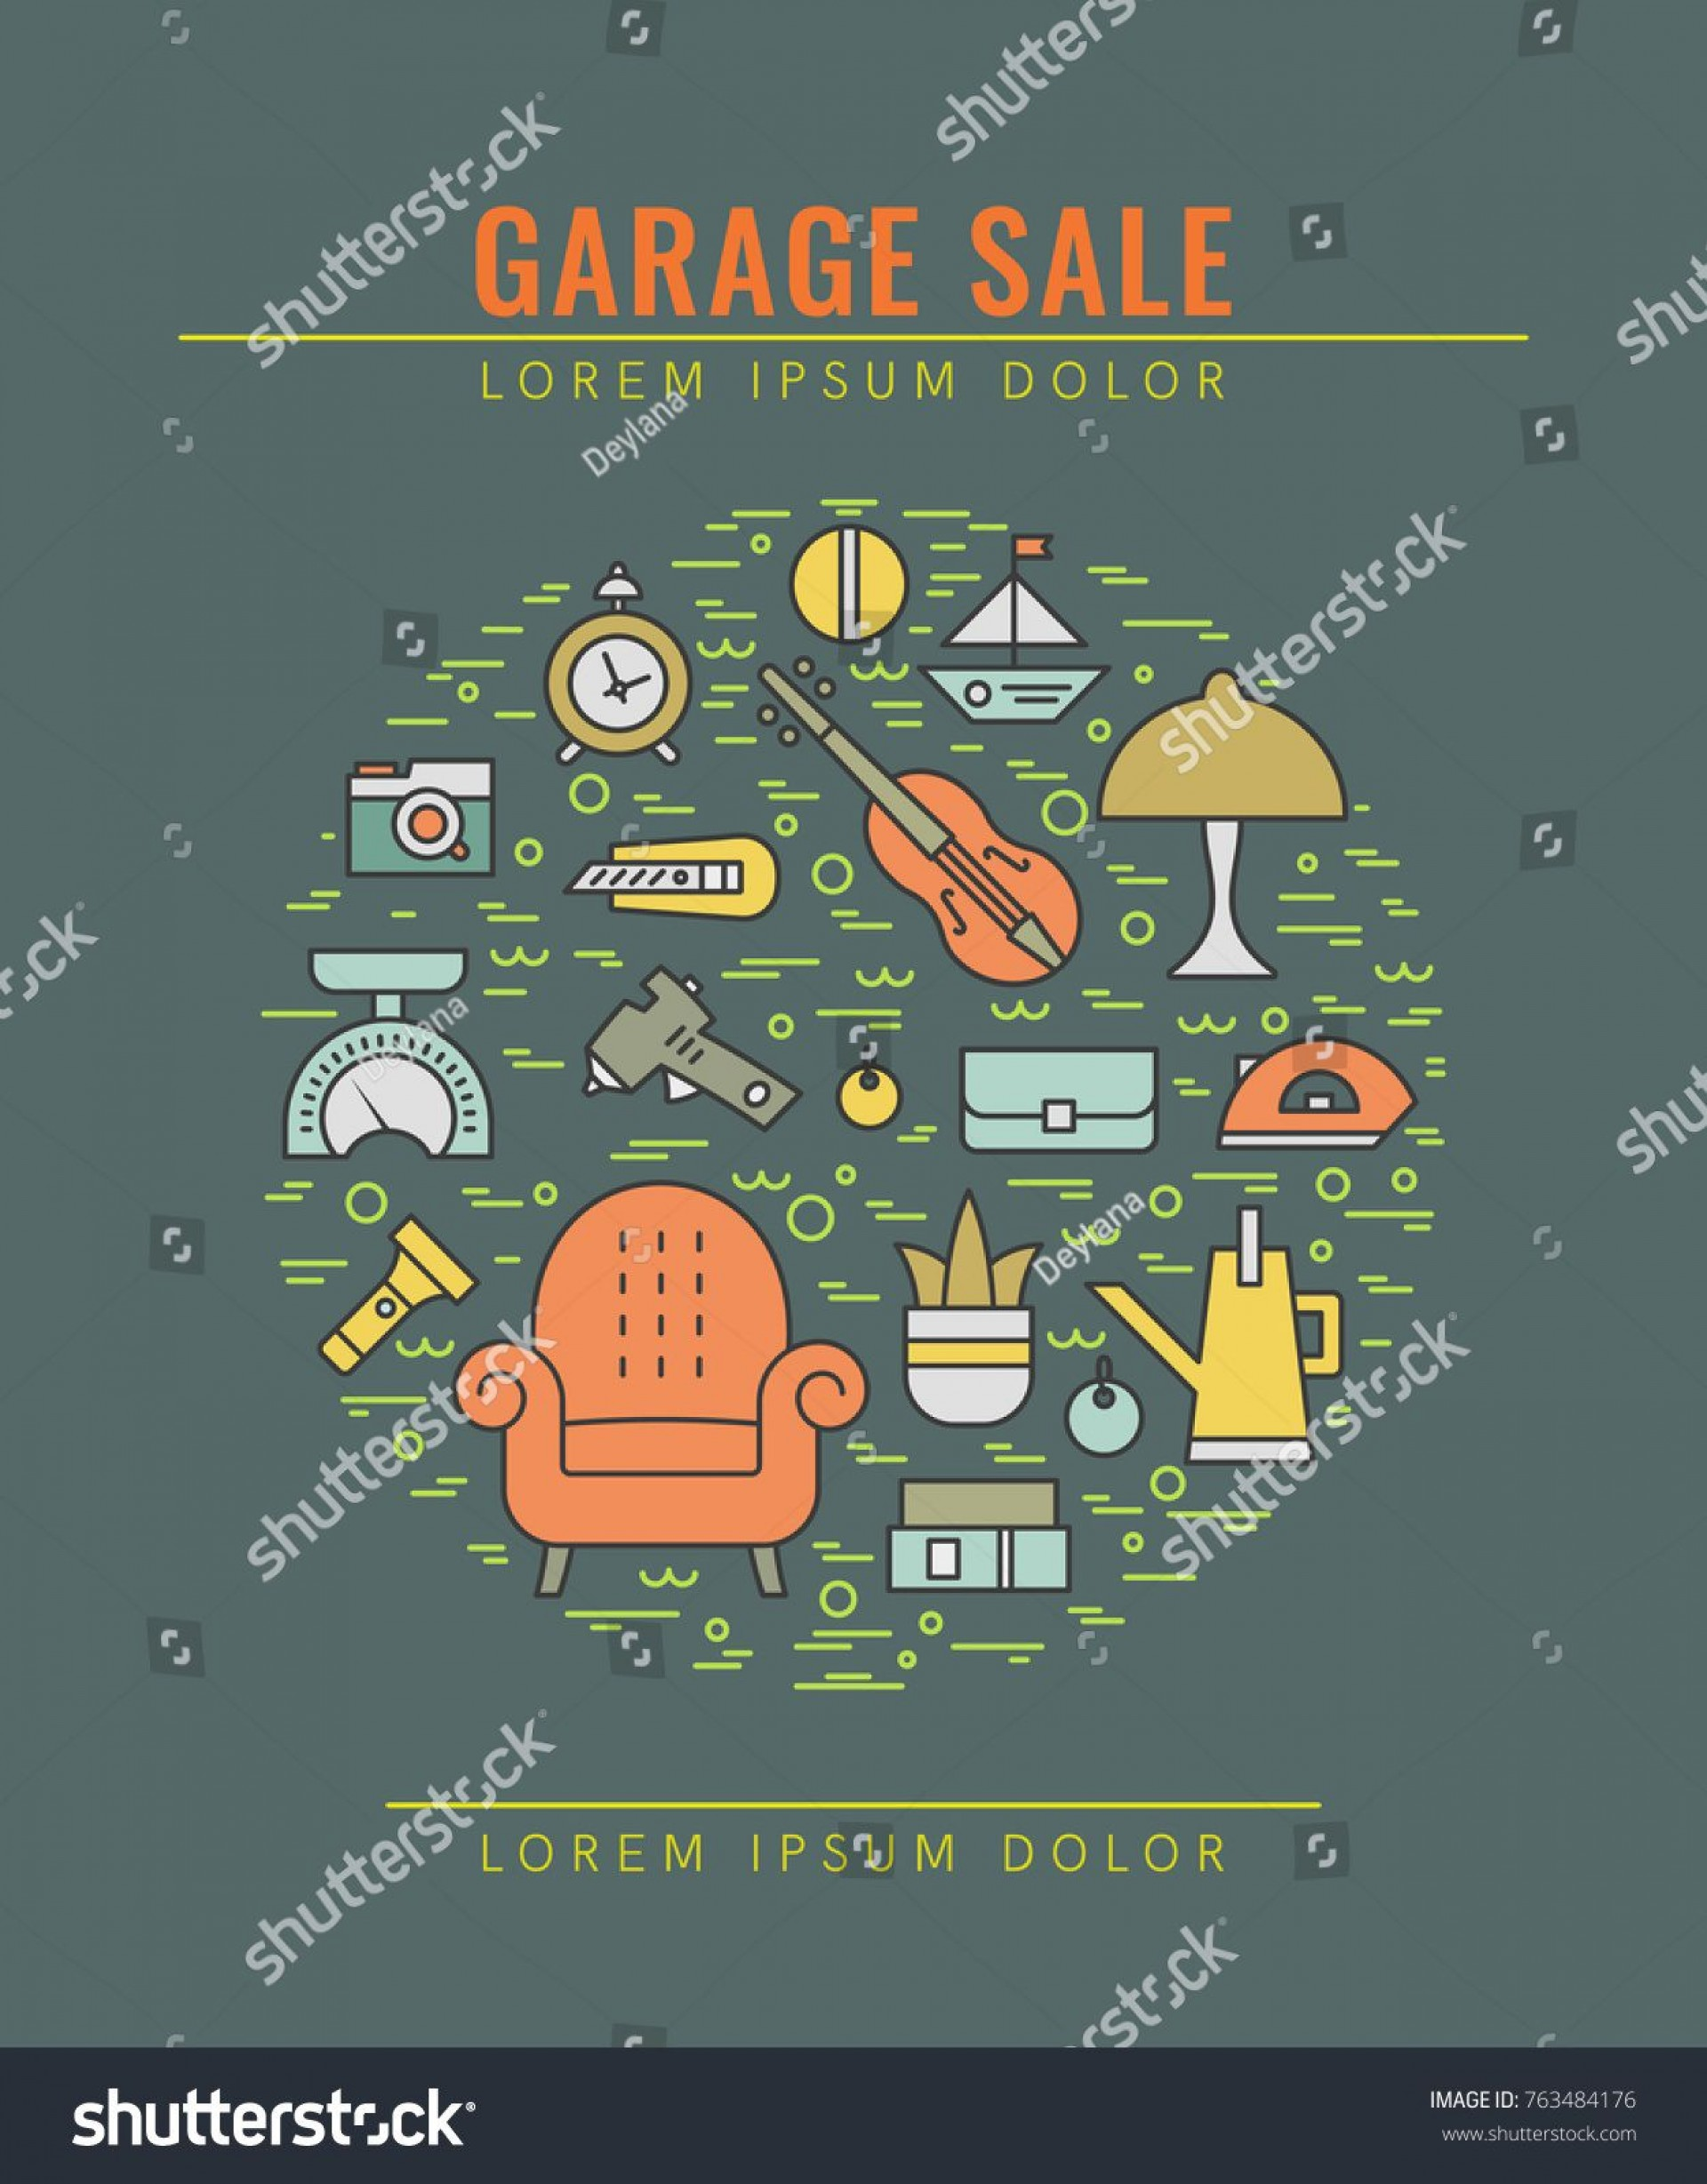 008 Impressive Yard Sale Flyer Template Concept  Free Garage Microsoft Word1920